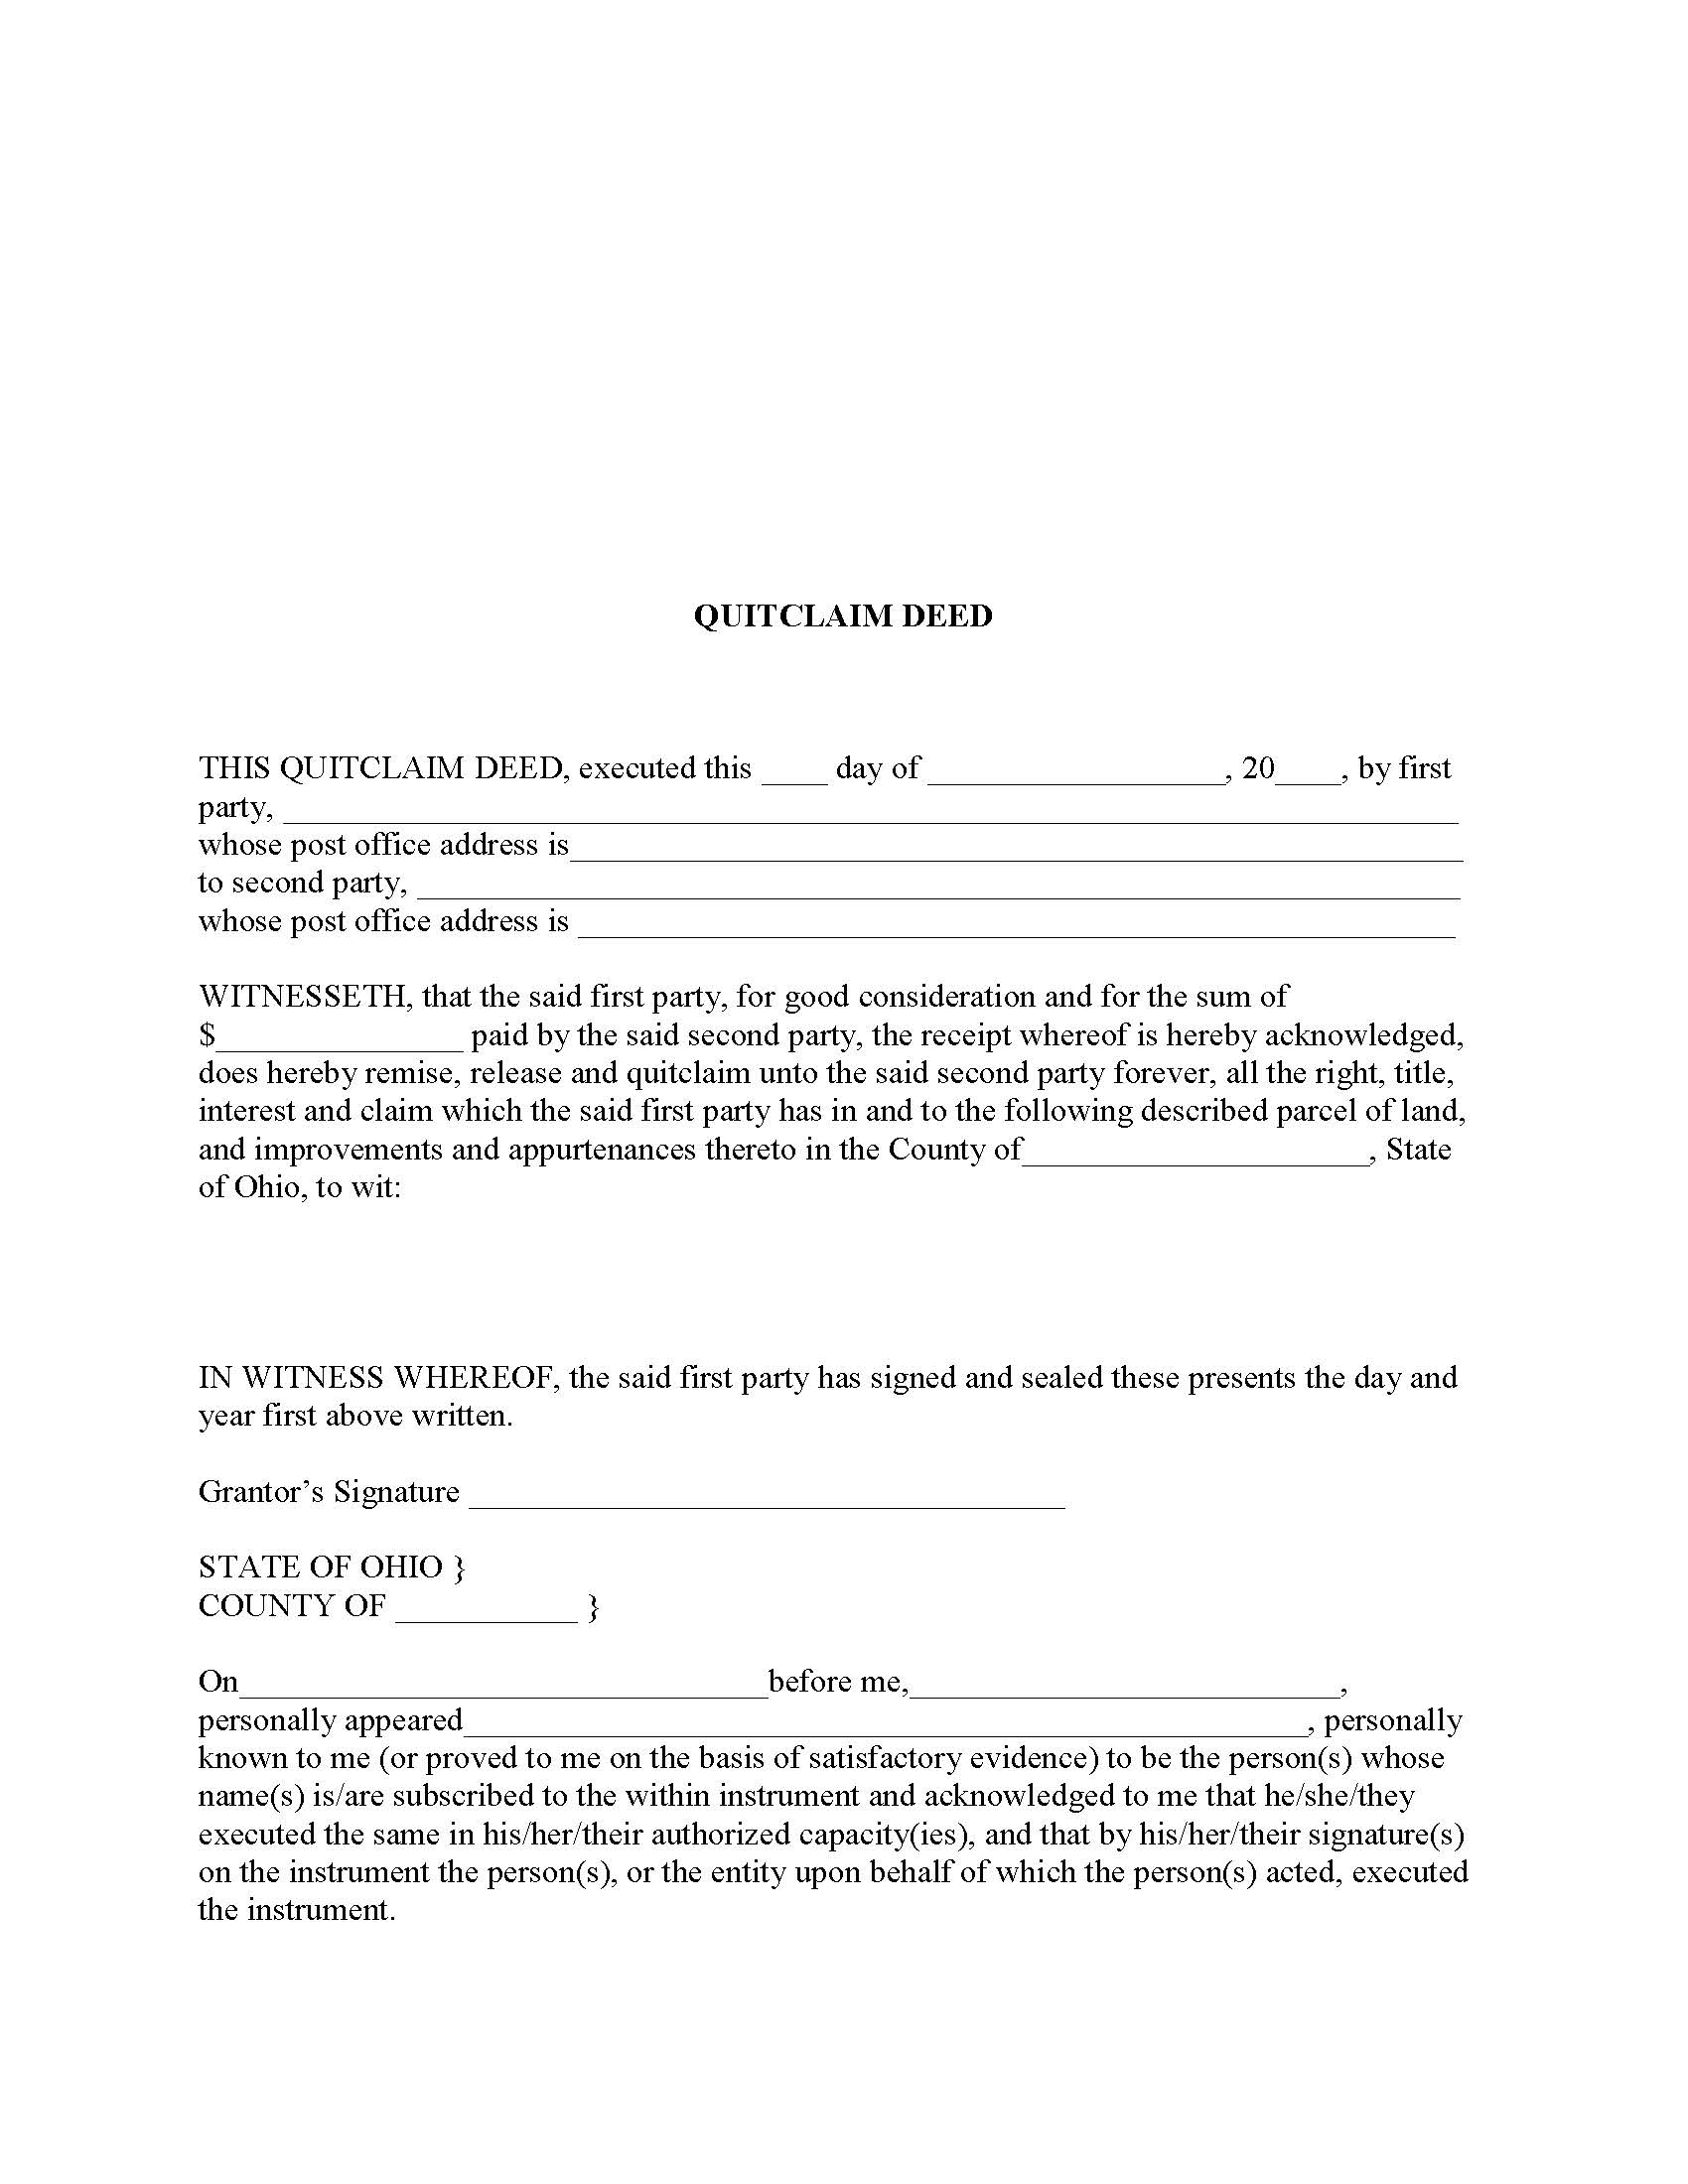 Ohio Quit Claim Deed Form Deed Forms Deed Forms